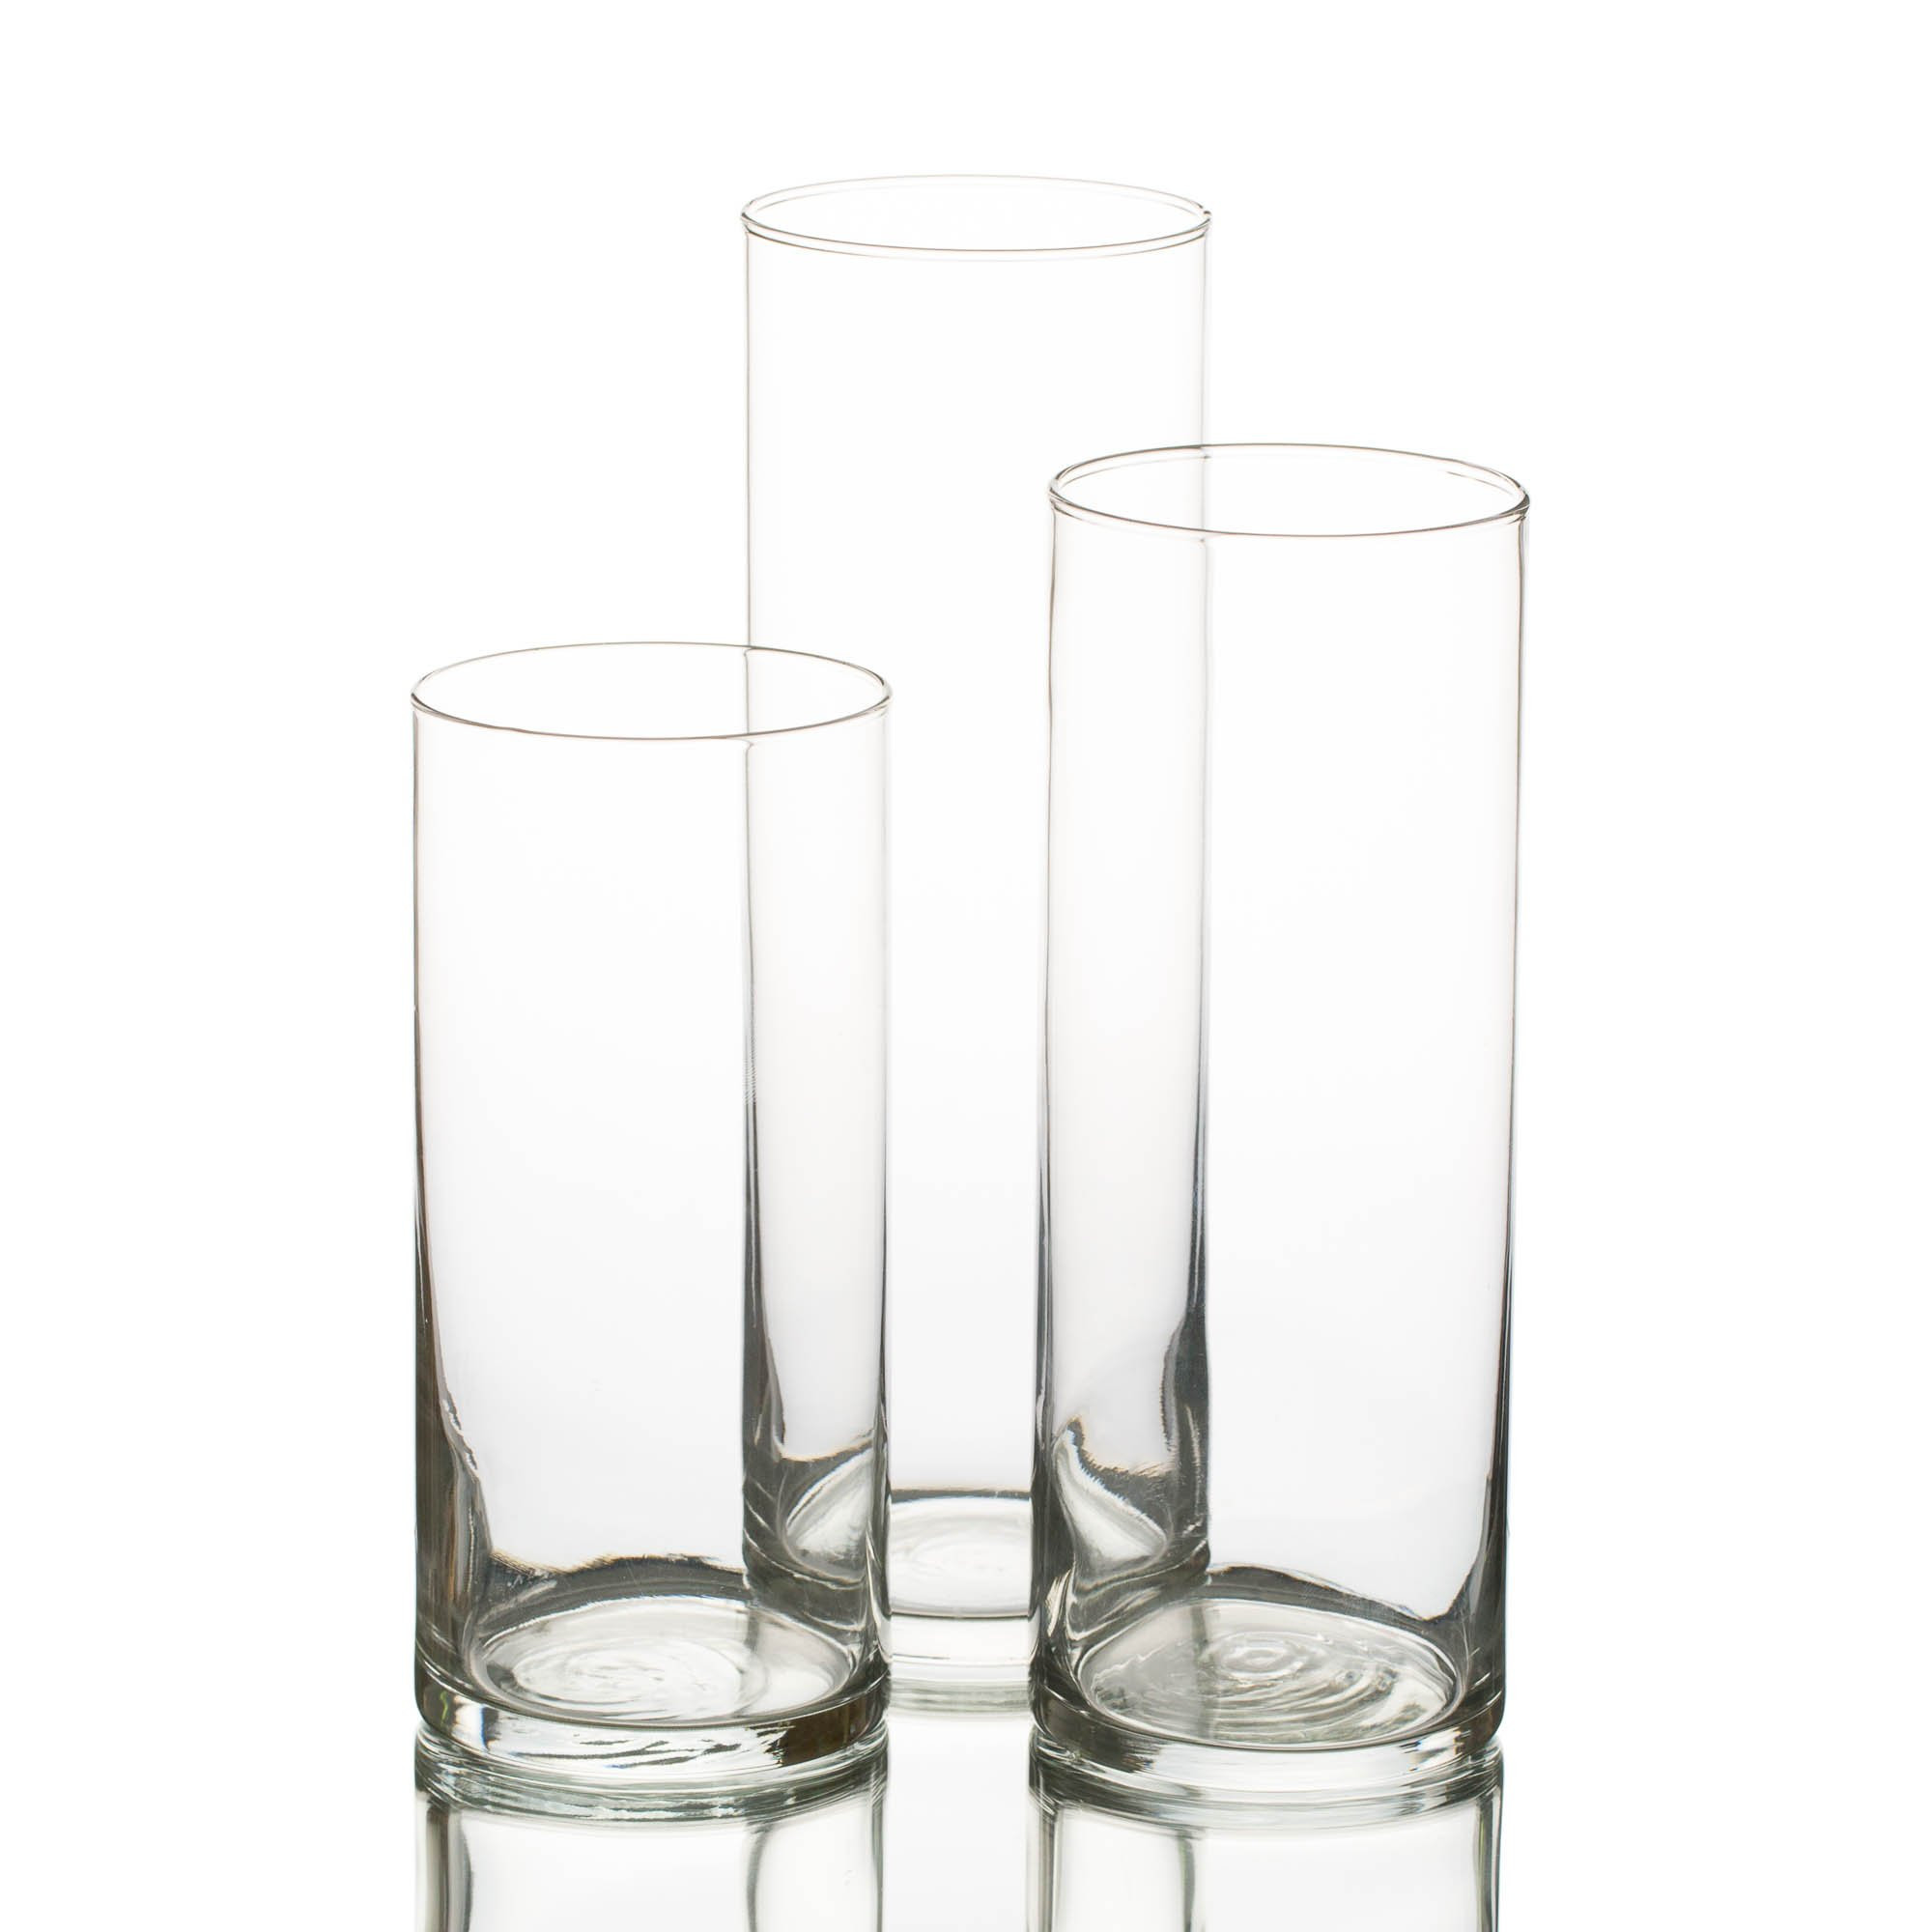 libbey glass cylinder vase 4.5 of amazon com eastland glass cylinder vase set of 3 home kitchen pertaining to 71ws6jd0dtl